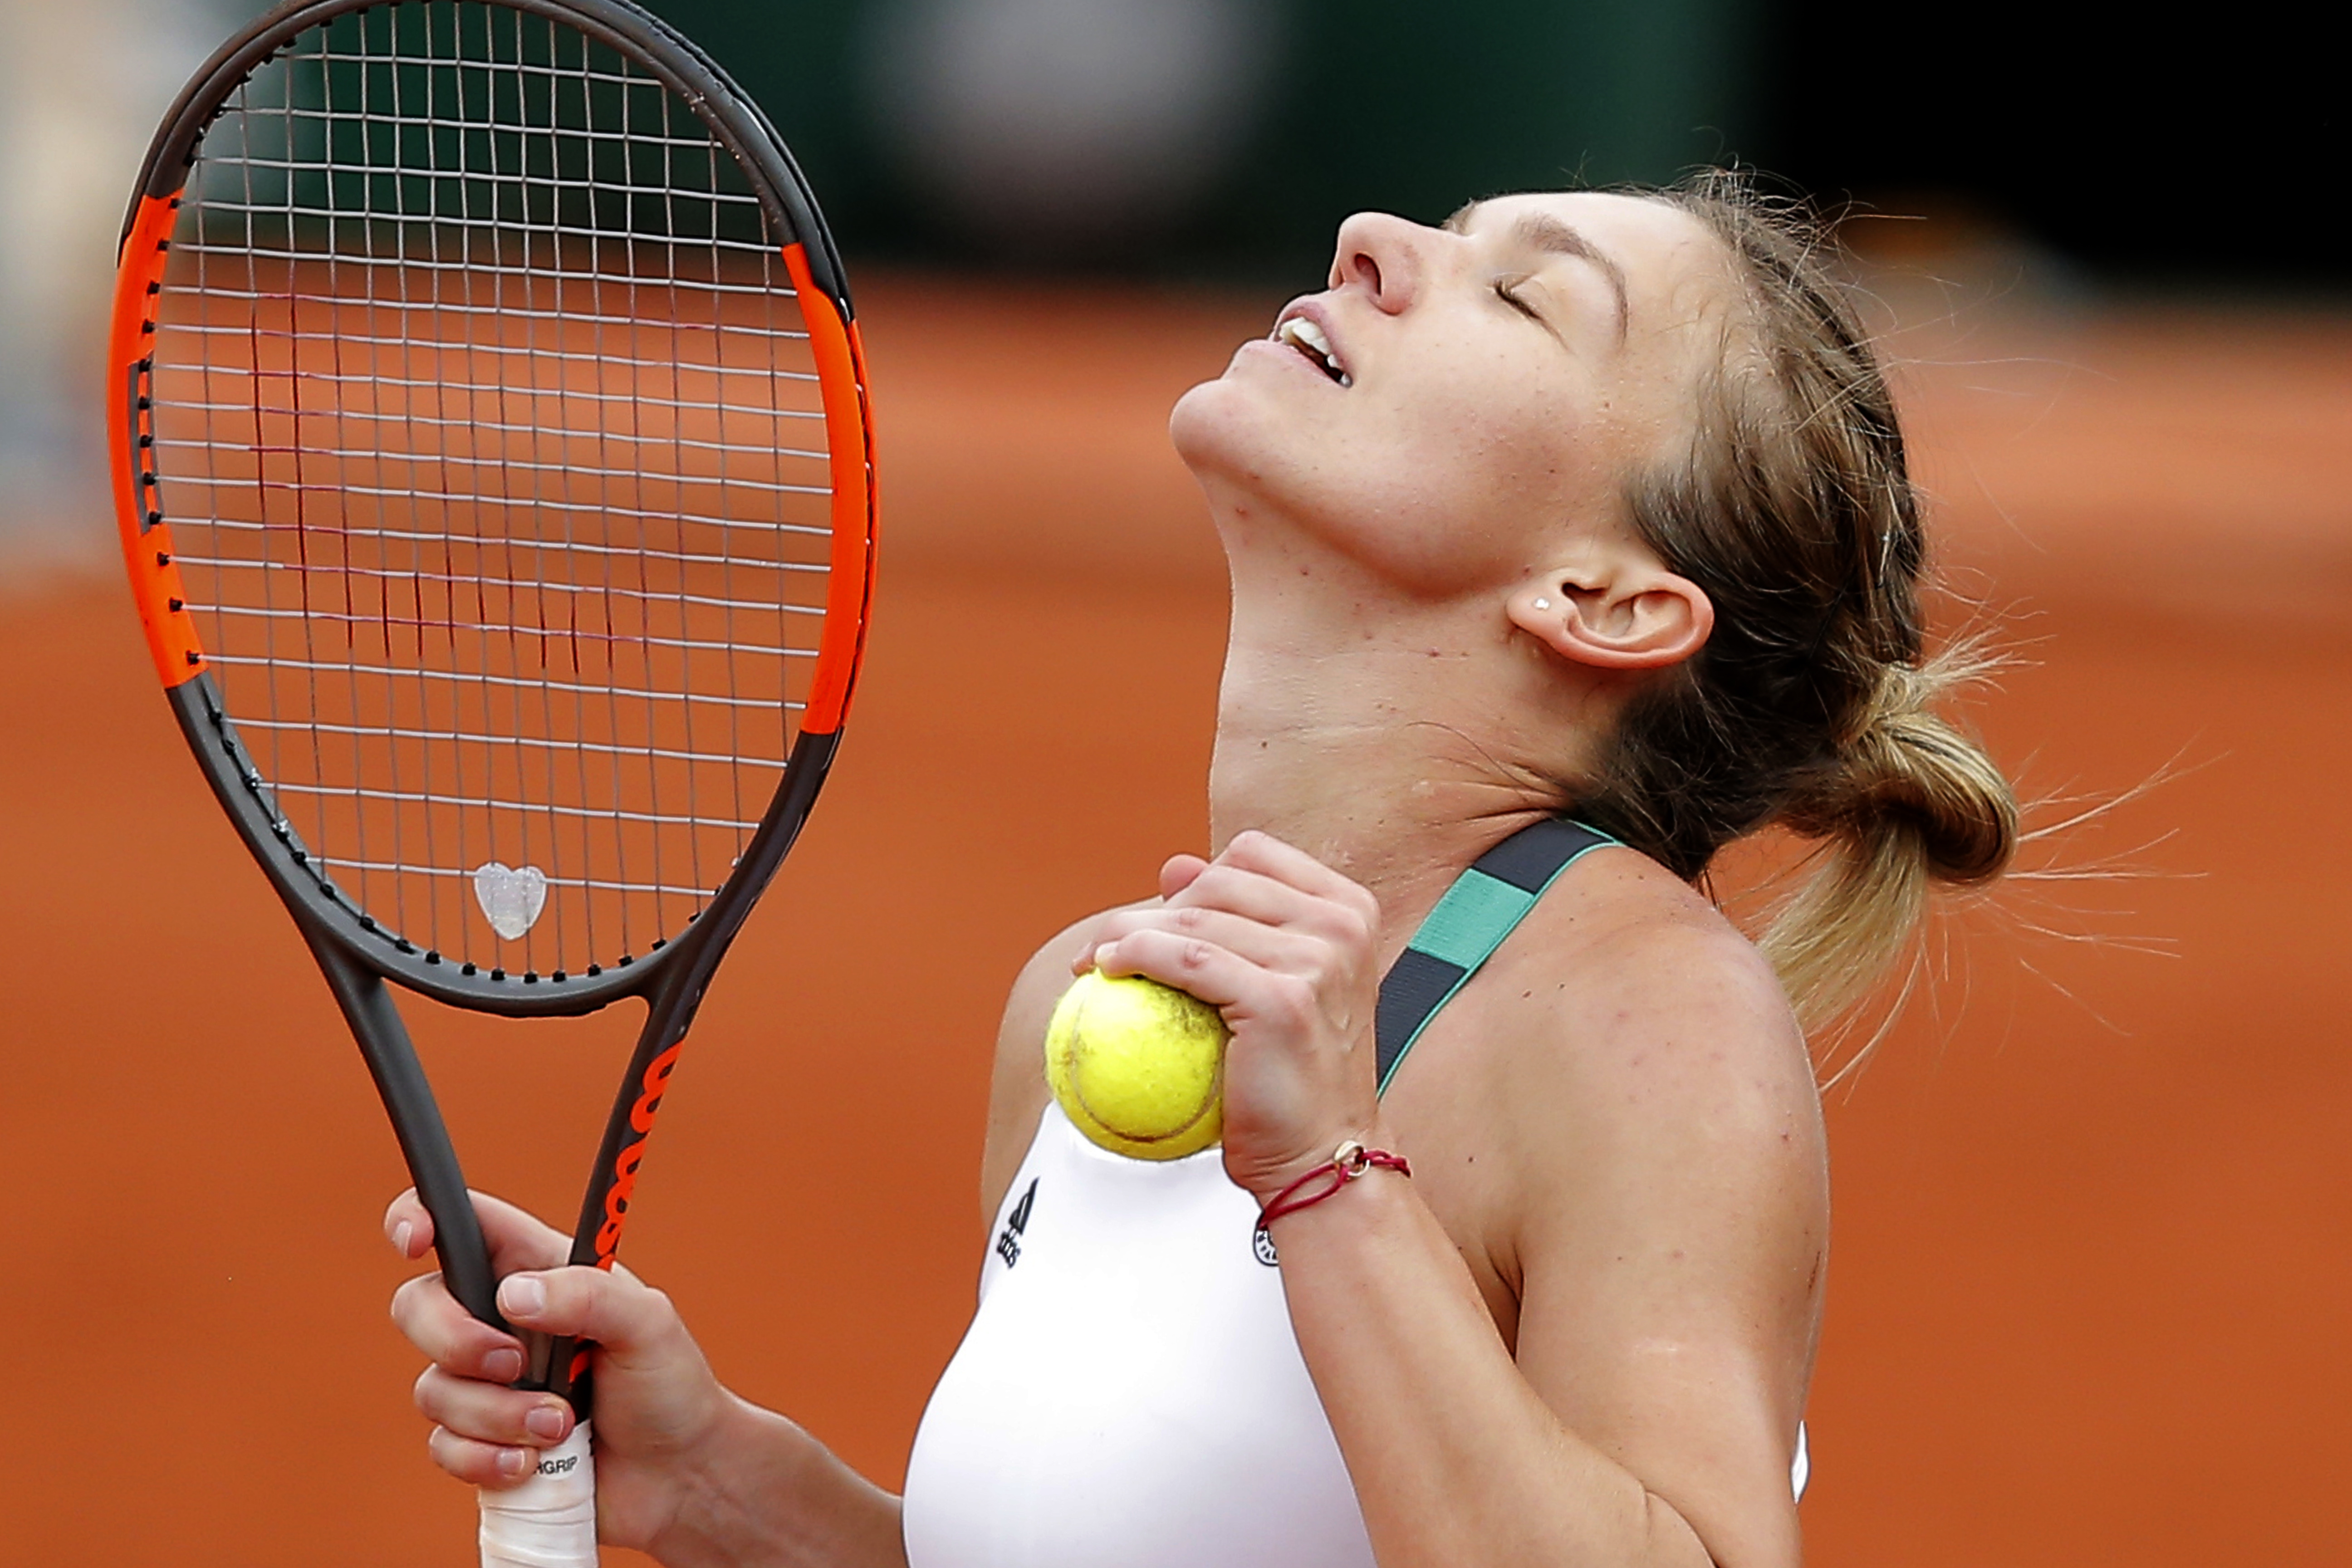 Romania's Simona Halep reacts as she defeats Karolina Pliskova of the Czech Republic during their semifinal match of the French Open tennis tournament at the Roland Garros stadium, Thursday, June 8, 2017 in Paris. (AP Photo/Michel Euler)